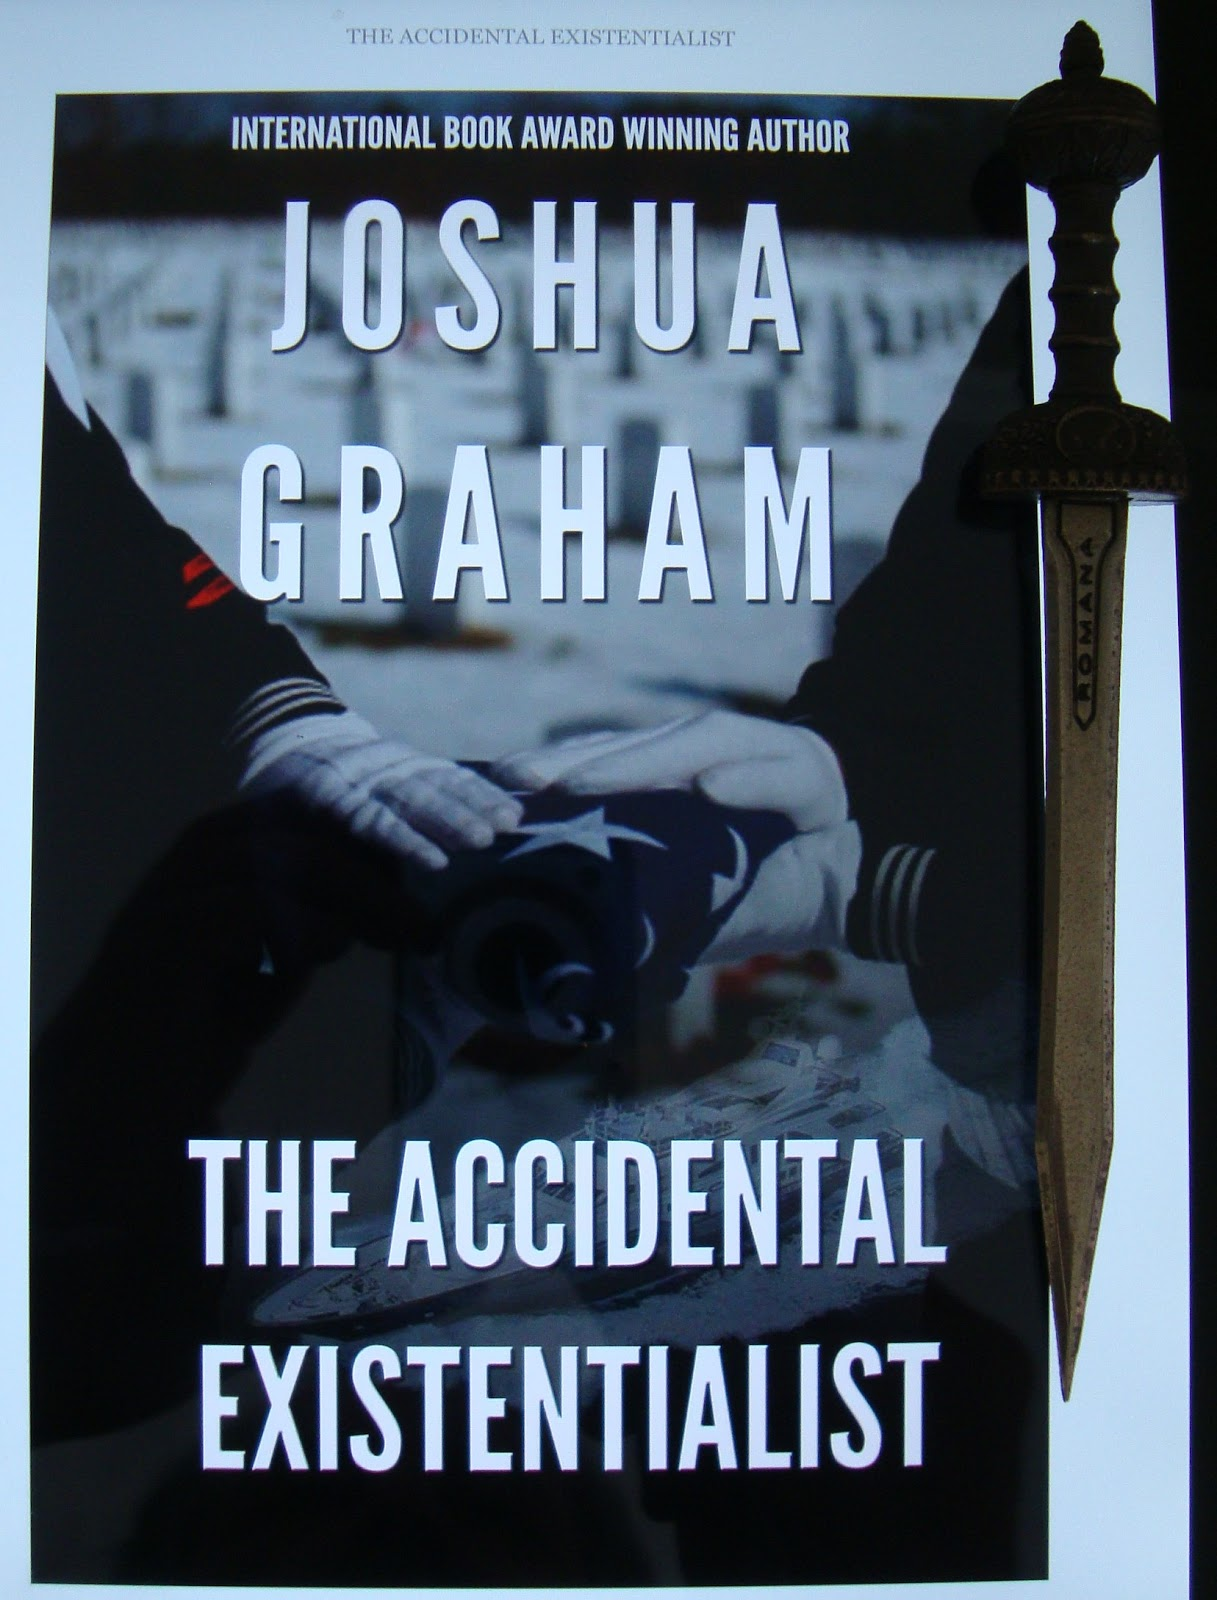 Libros Sobre Existencialismo Libros De Olethros The Accidental Existentialist Joshua